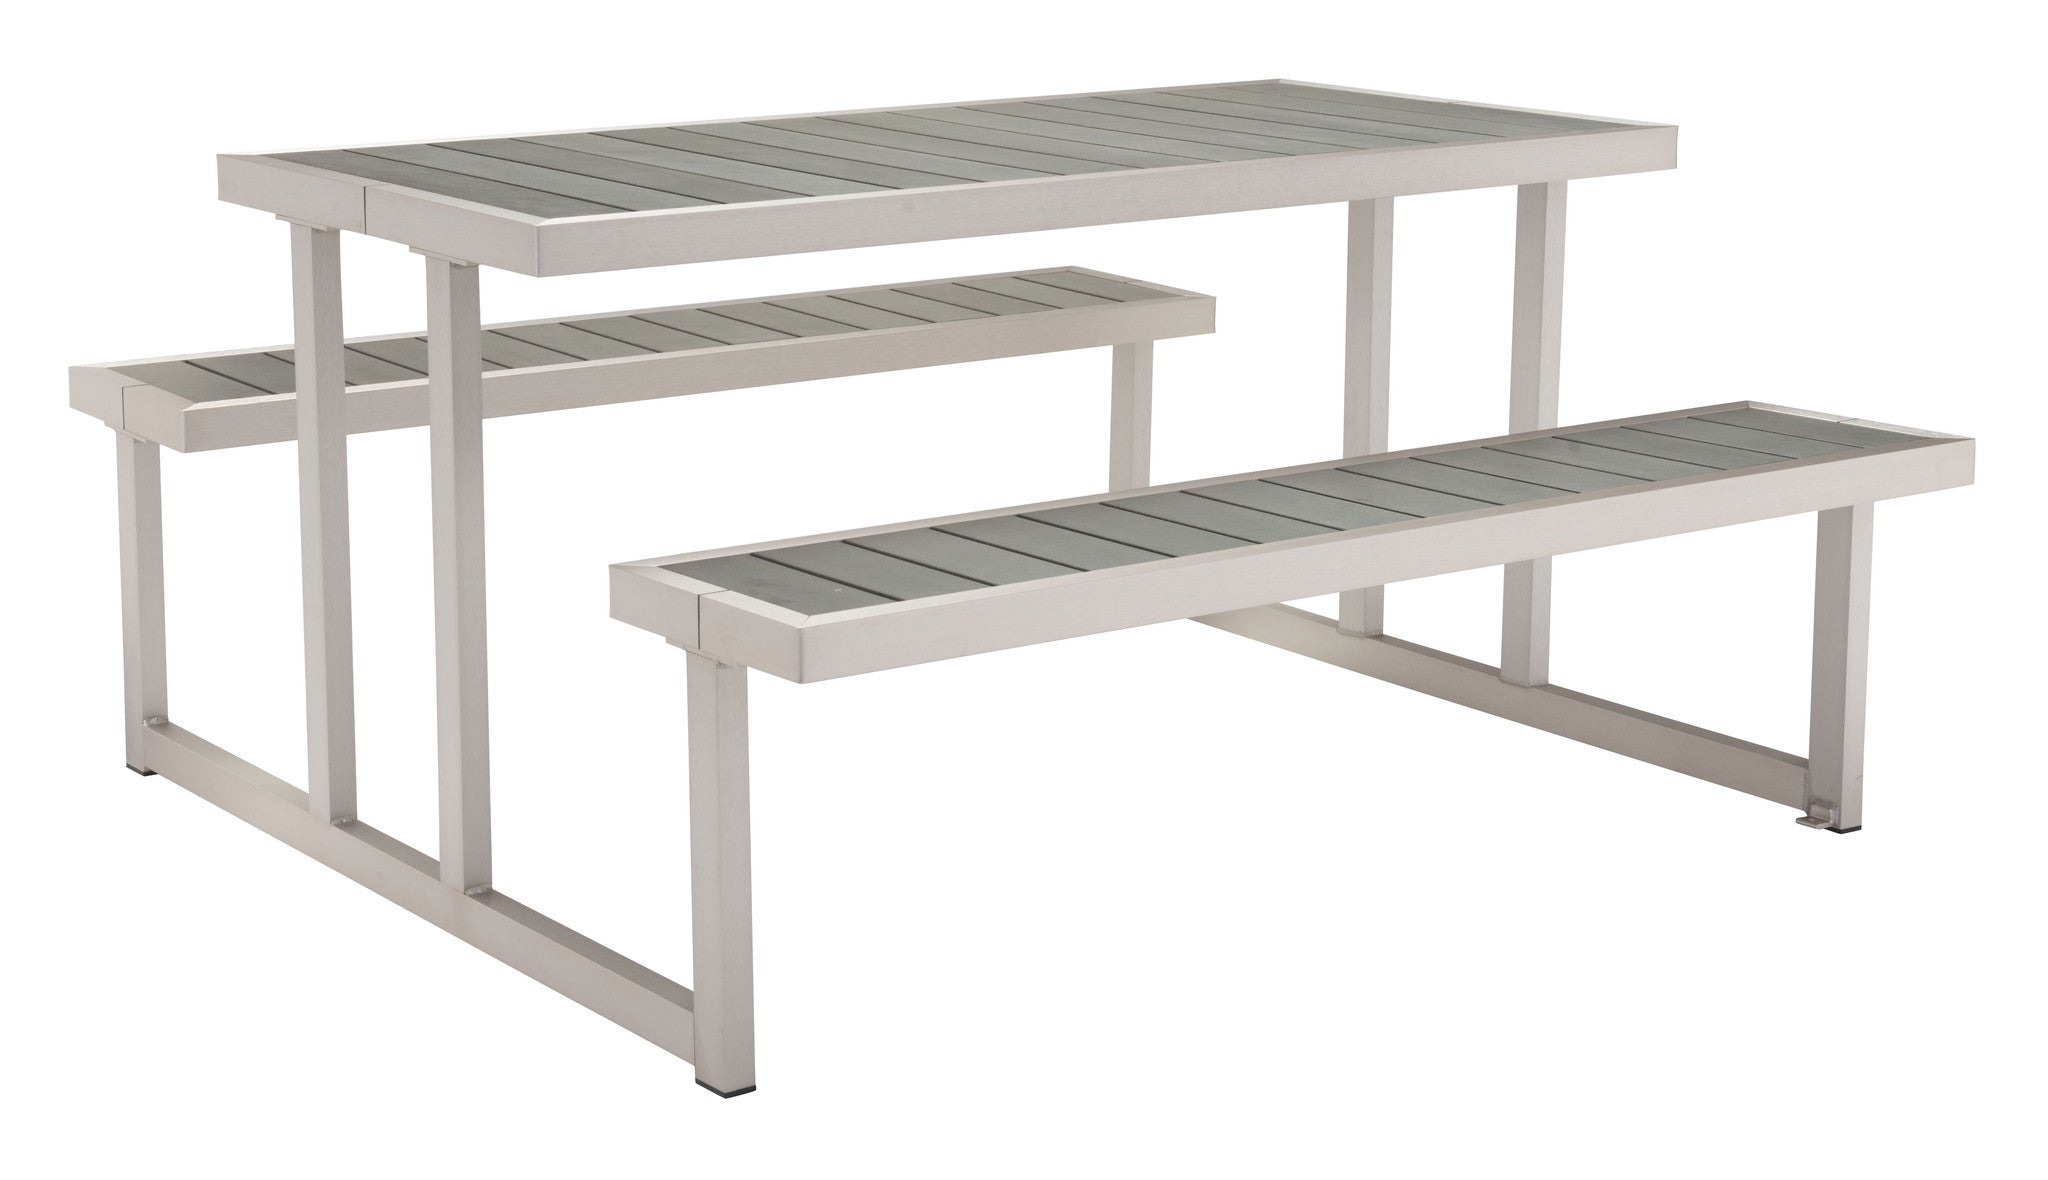 Cuomo Picnic Table U0026 Benches With Poly Wood Tops On Galvanized Aluminum  Frame Outdoor Tables ...